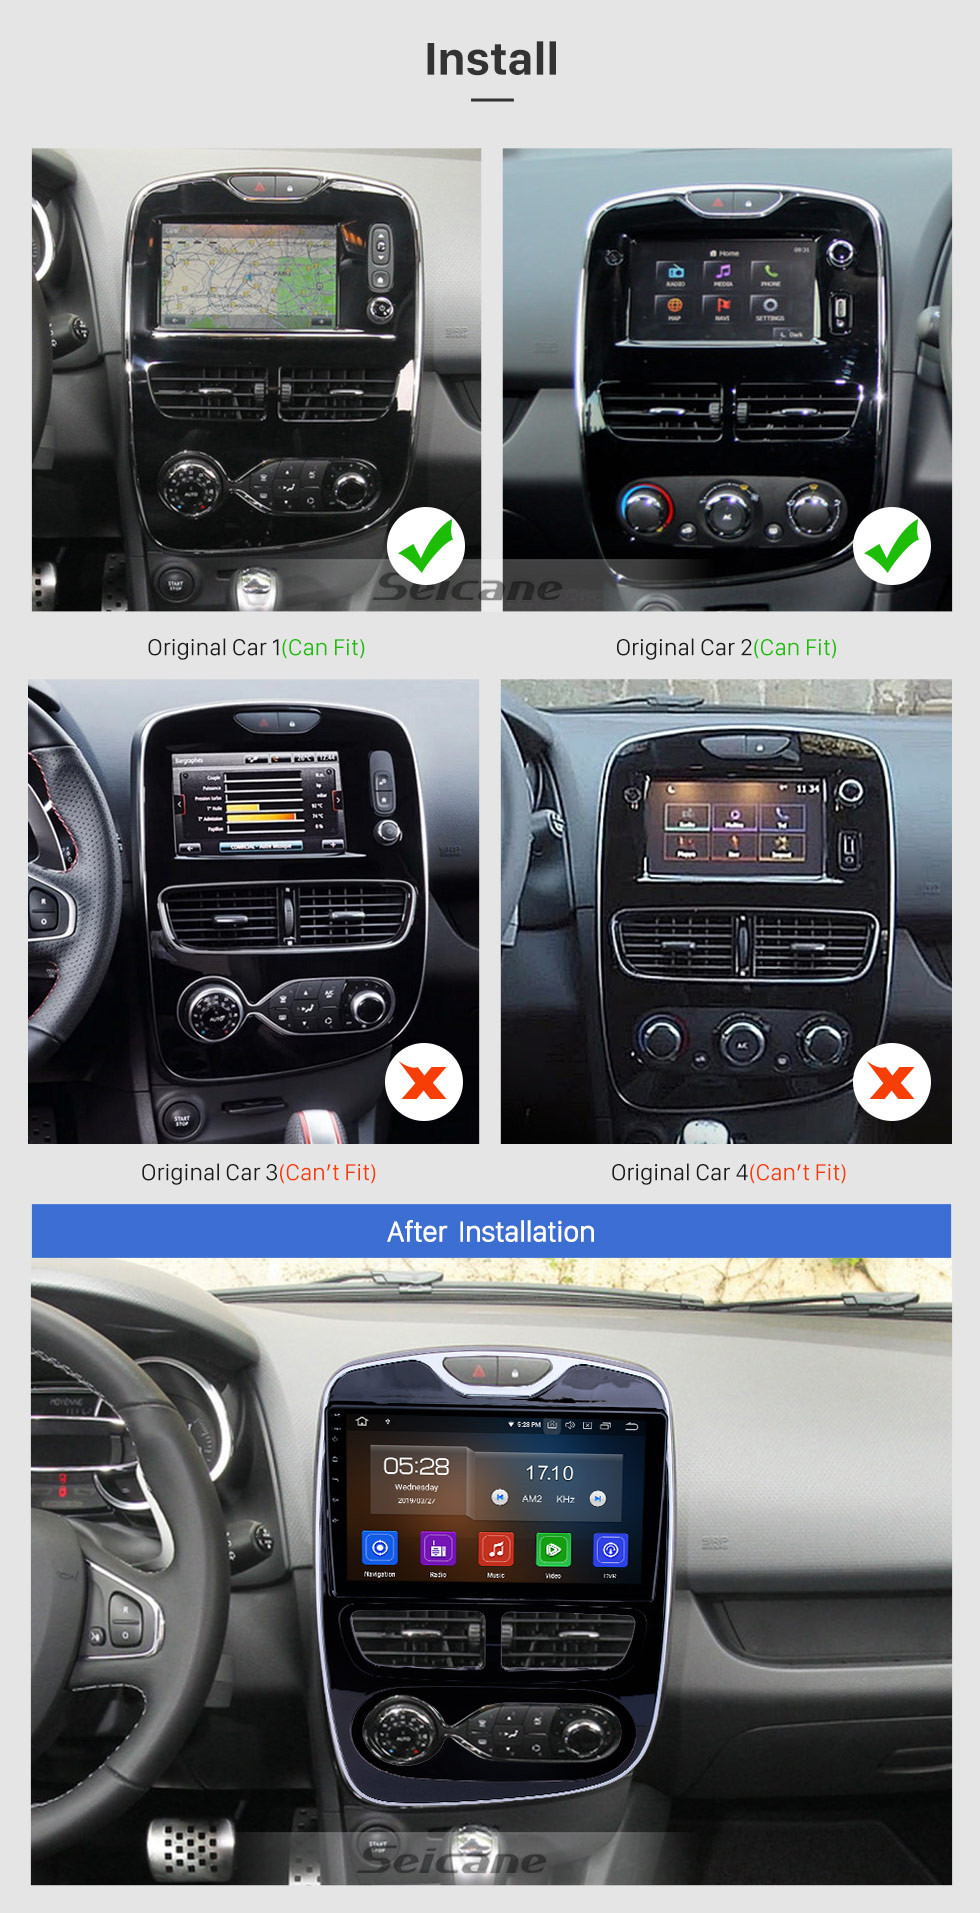 Seicane 10.1 inch Android 10.0 Radio for 2012-2016 Renault Clio Digital/Analog with Bluetooth HD Touchscreen GPS Navigation Carplay support DAB+